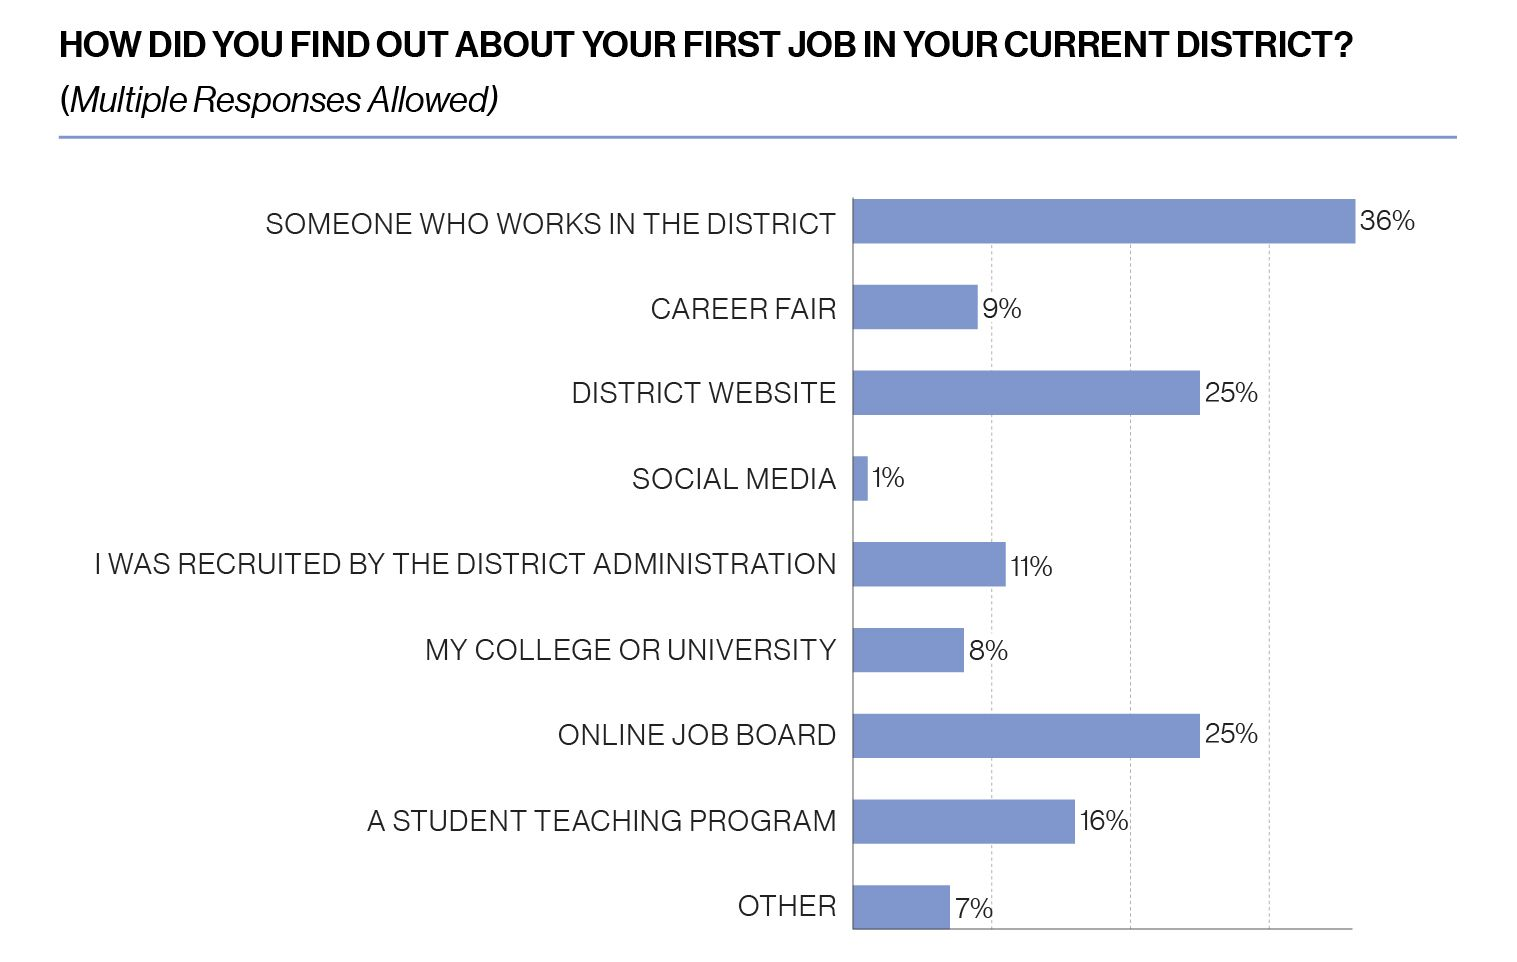 Chart, how did you find out about your first job in your current district? Multiple responses allowed. 36% say someone who works in the district, 9% say career fair, 25% say district website, 1% say social media, 11% say they were recruited by the district administration, 8% say my college or university, 25% say online job board, 16% say a student teaching program, 7% say other